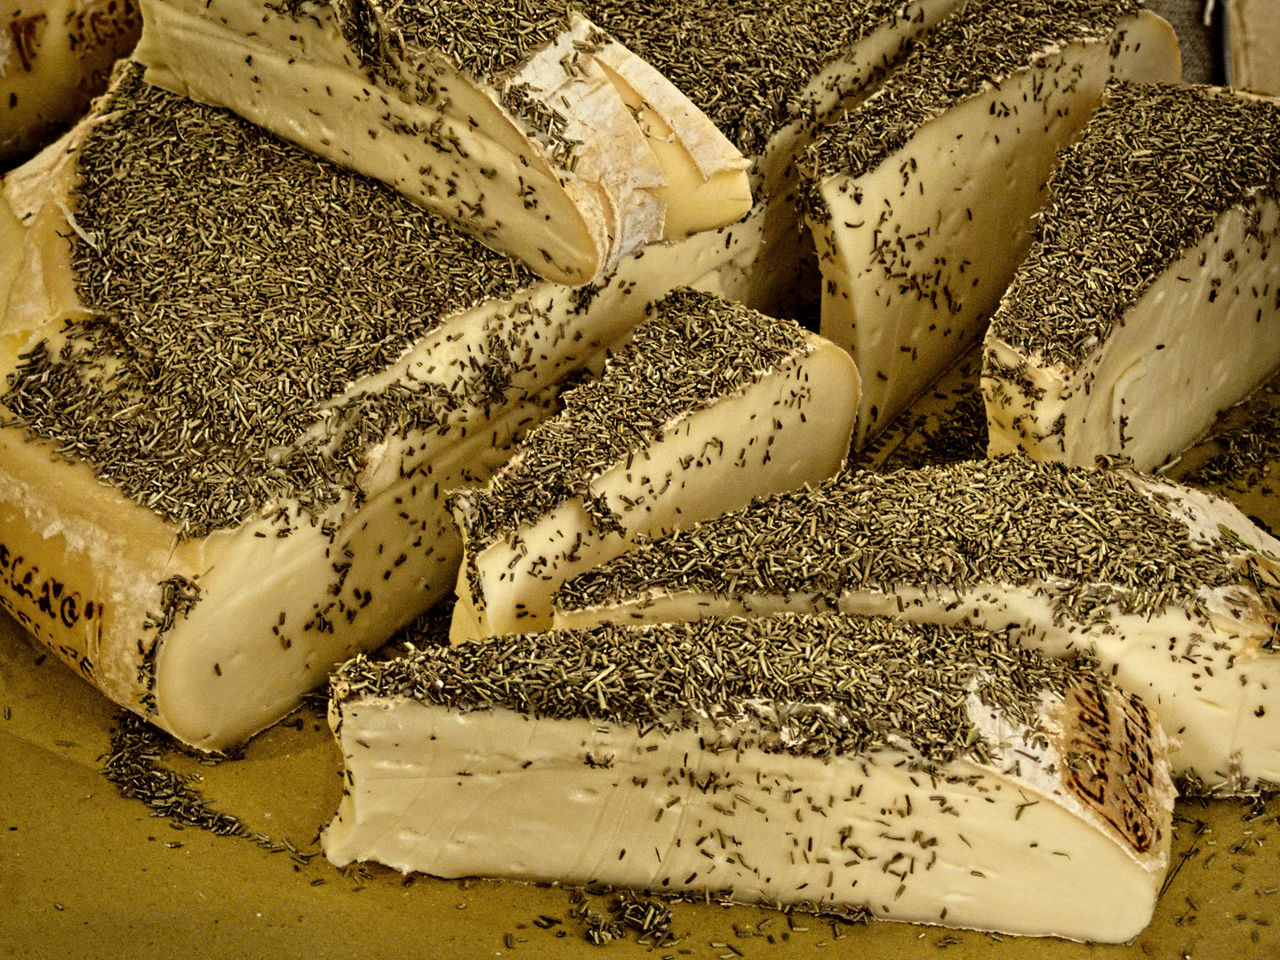 Abundance Cheese Close-up Food Food Photography Italian Food Large Group Of Objects Natural Food No People NoTTIP Organic Food Produce Ready-to-eat Slowfood Terramadre